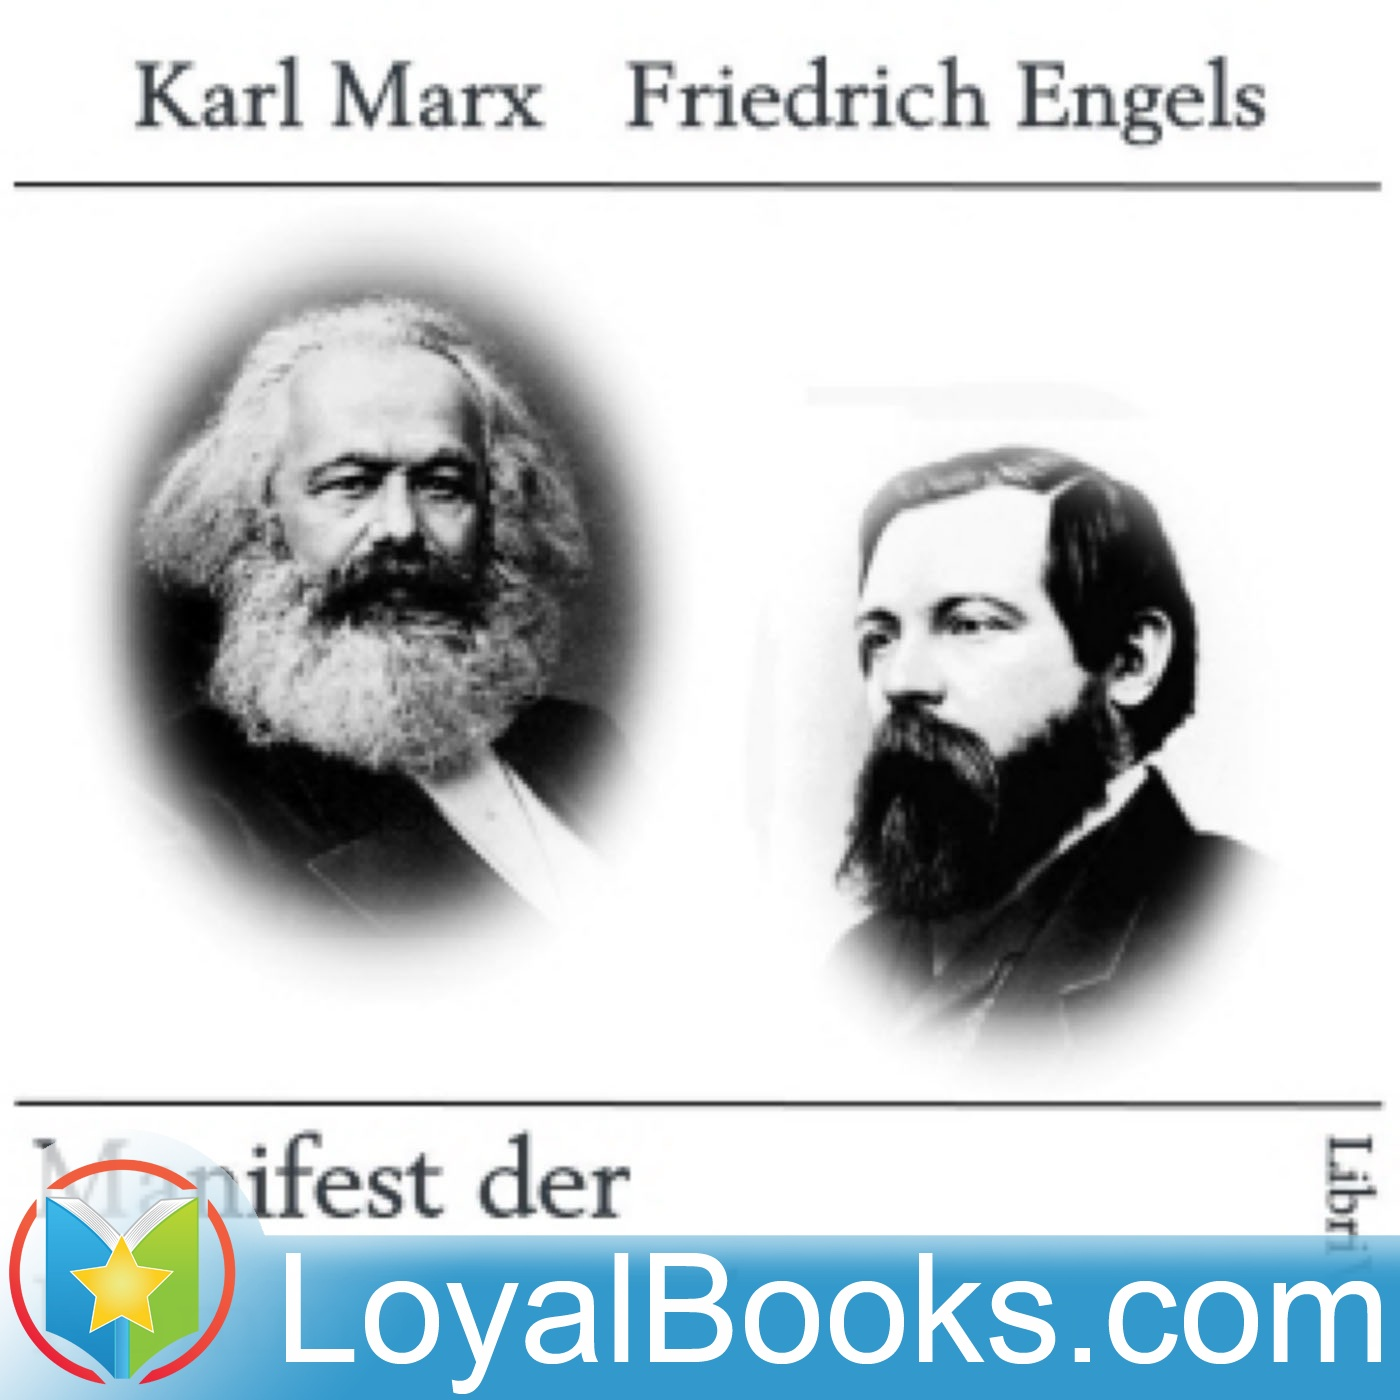 an introduction to the lives of karl marx and friedrich engel The german ideology [karl marx, friedrich engels] also found among the posthumous papers of marx, is a fragment of an introduction to his main works.